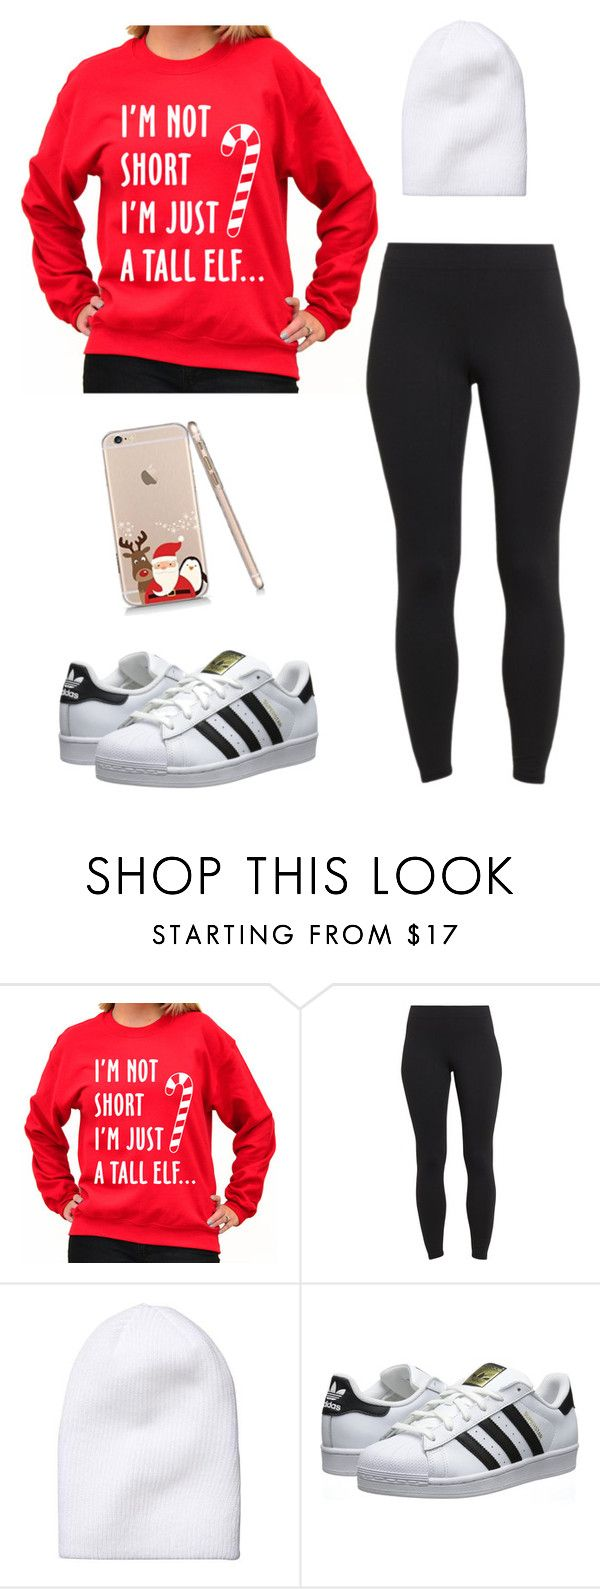 """Ugly Christmas Sweater"" by music-lover16 on Polyvore featuring SignatureTshirts, Maidenform, Athleta, adidas Originals and uglychristmassweater"